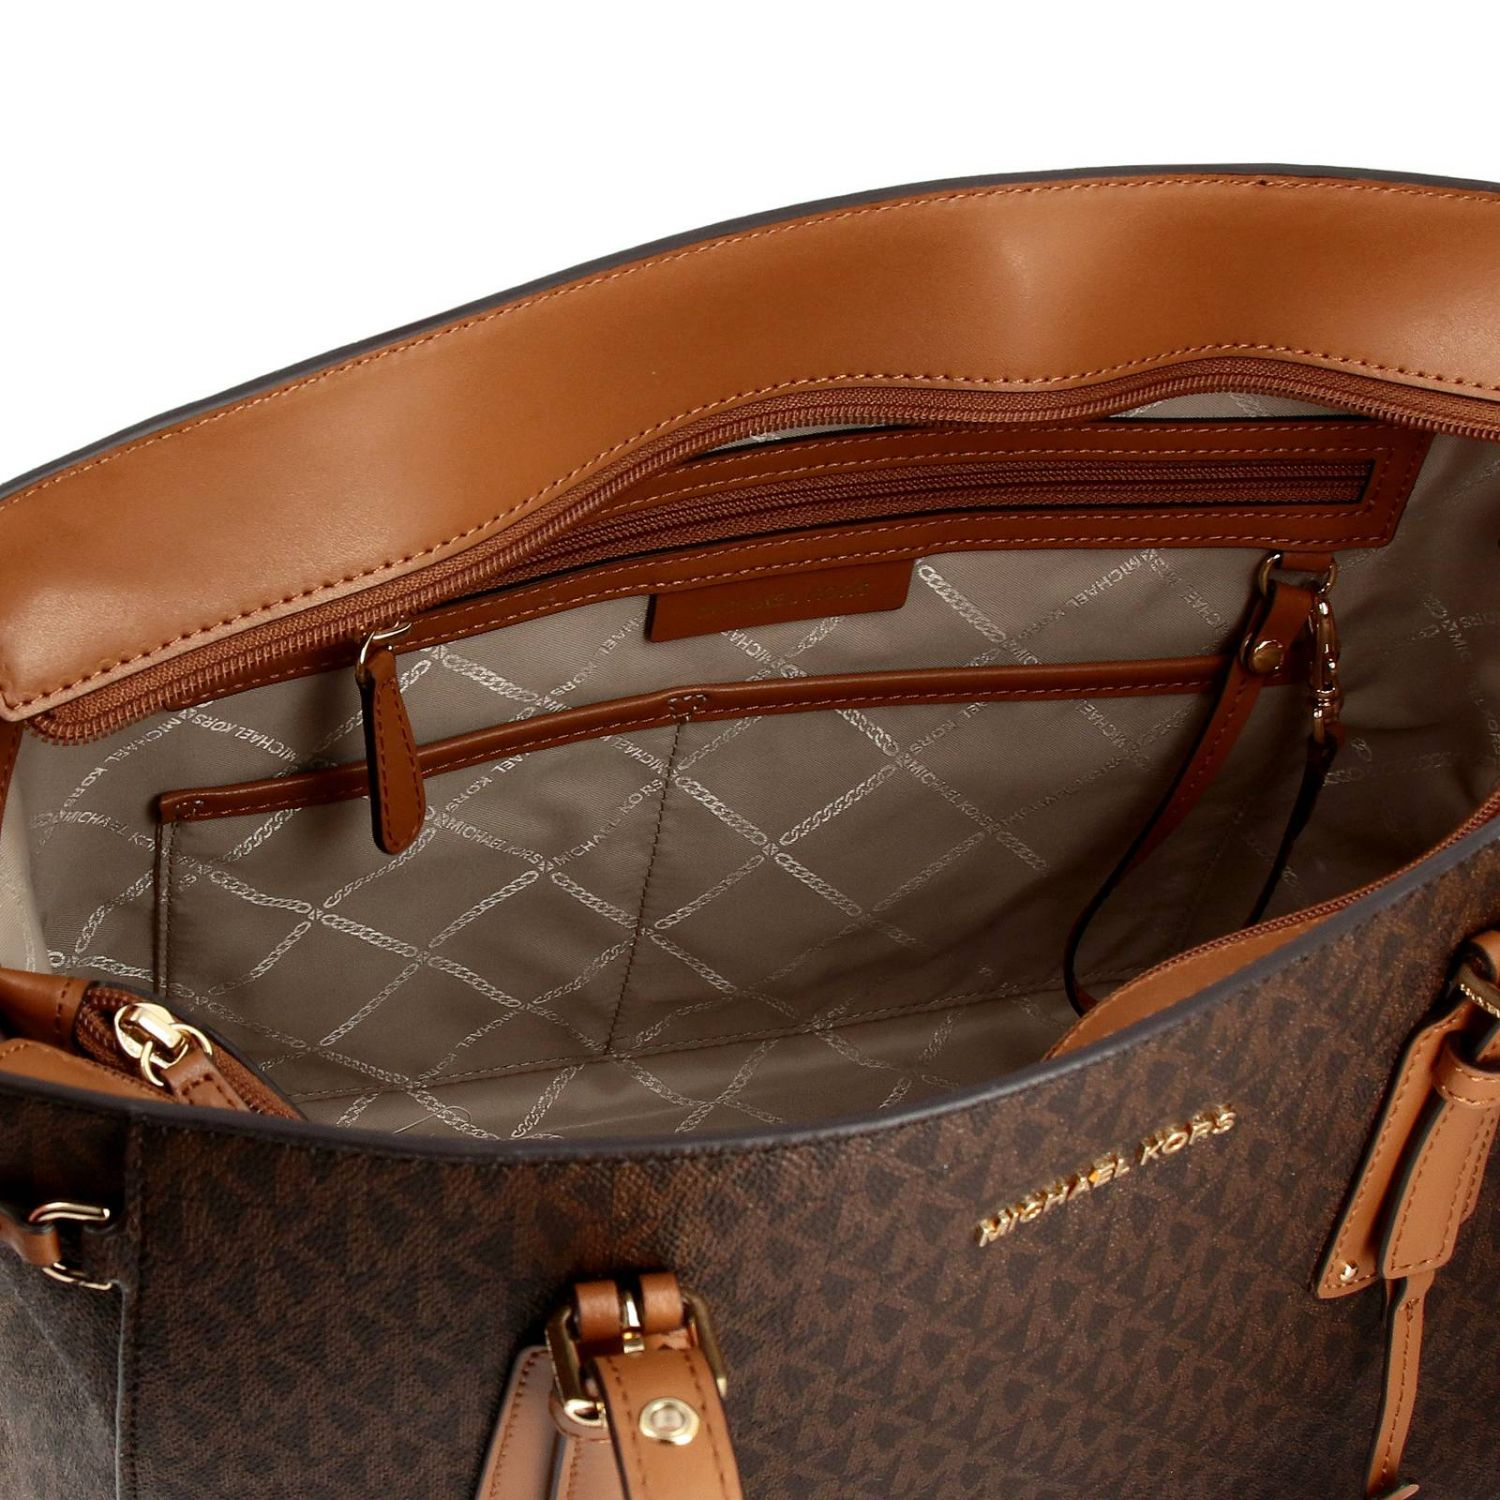 Sac Voyager Michael Michael Kors en cuir avec impression MK all over